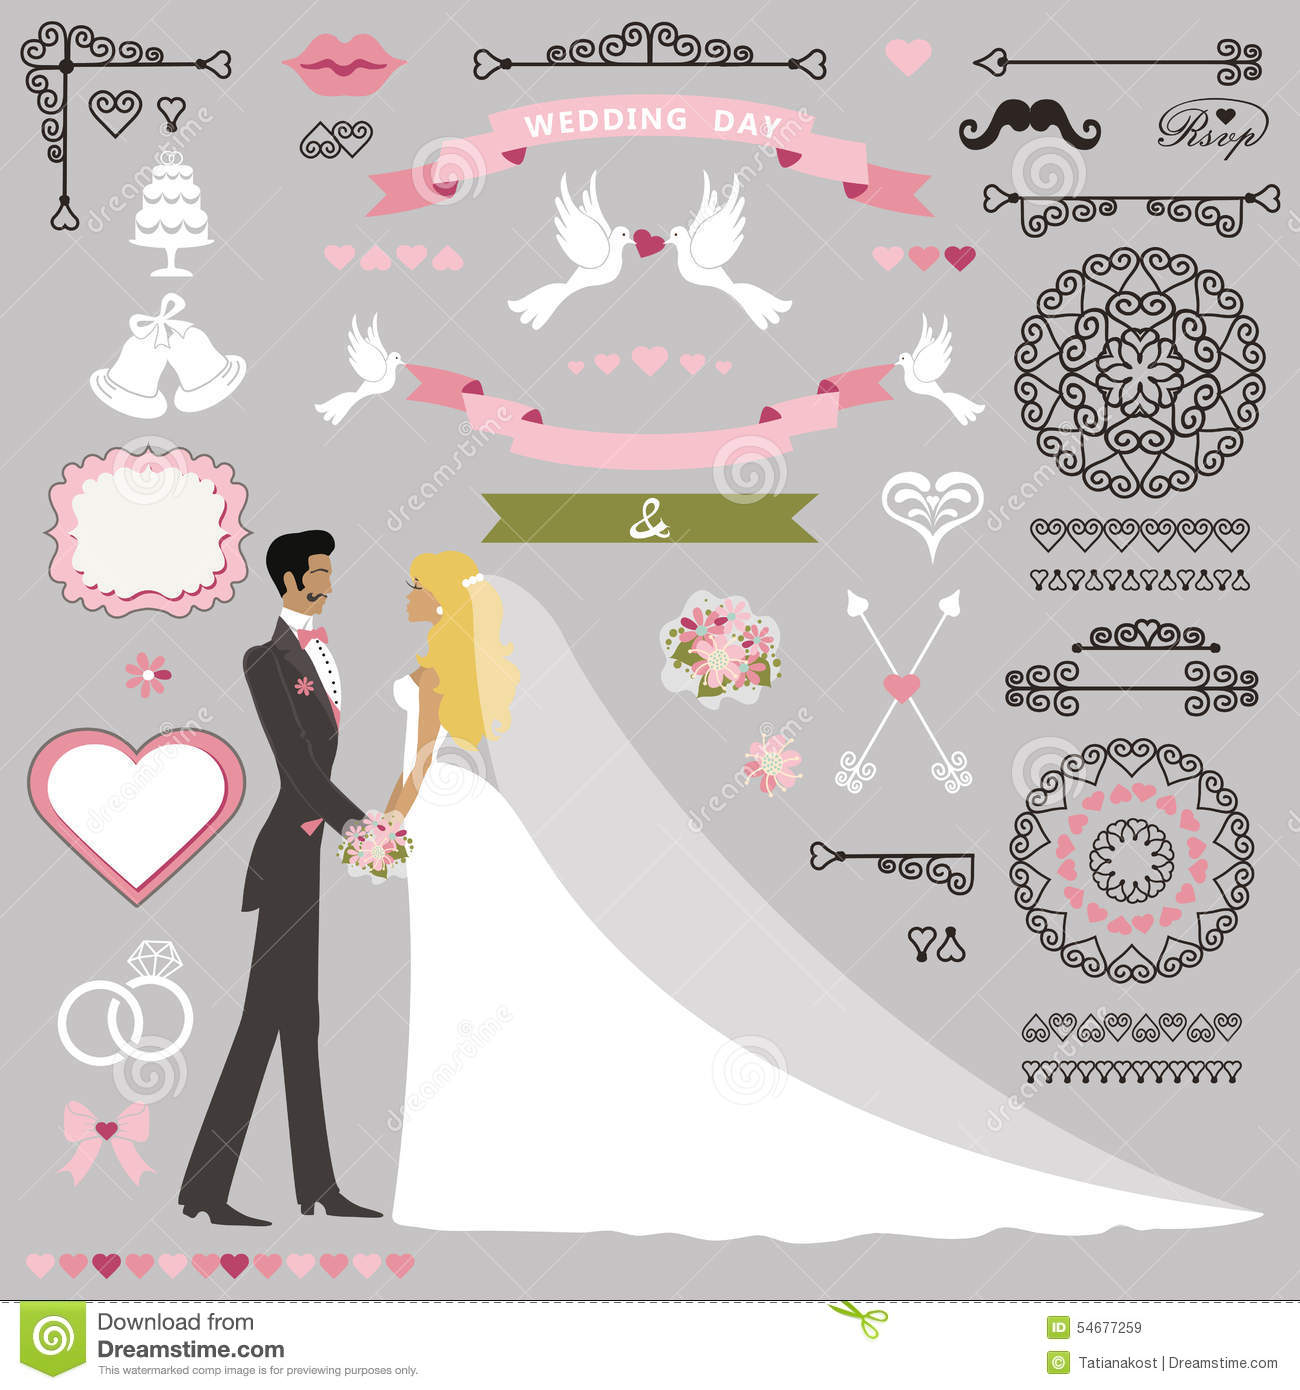 Wedding Invitation Decor Set With Kissing Stand Stock Vector Image 54677259